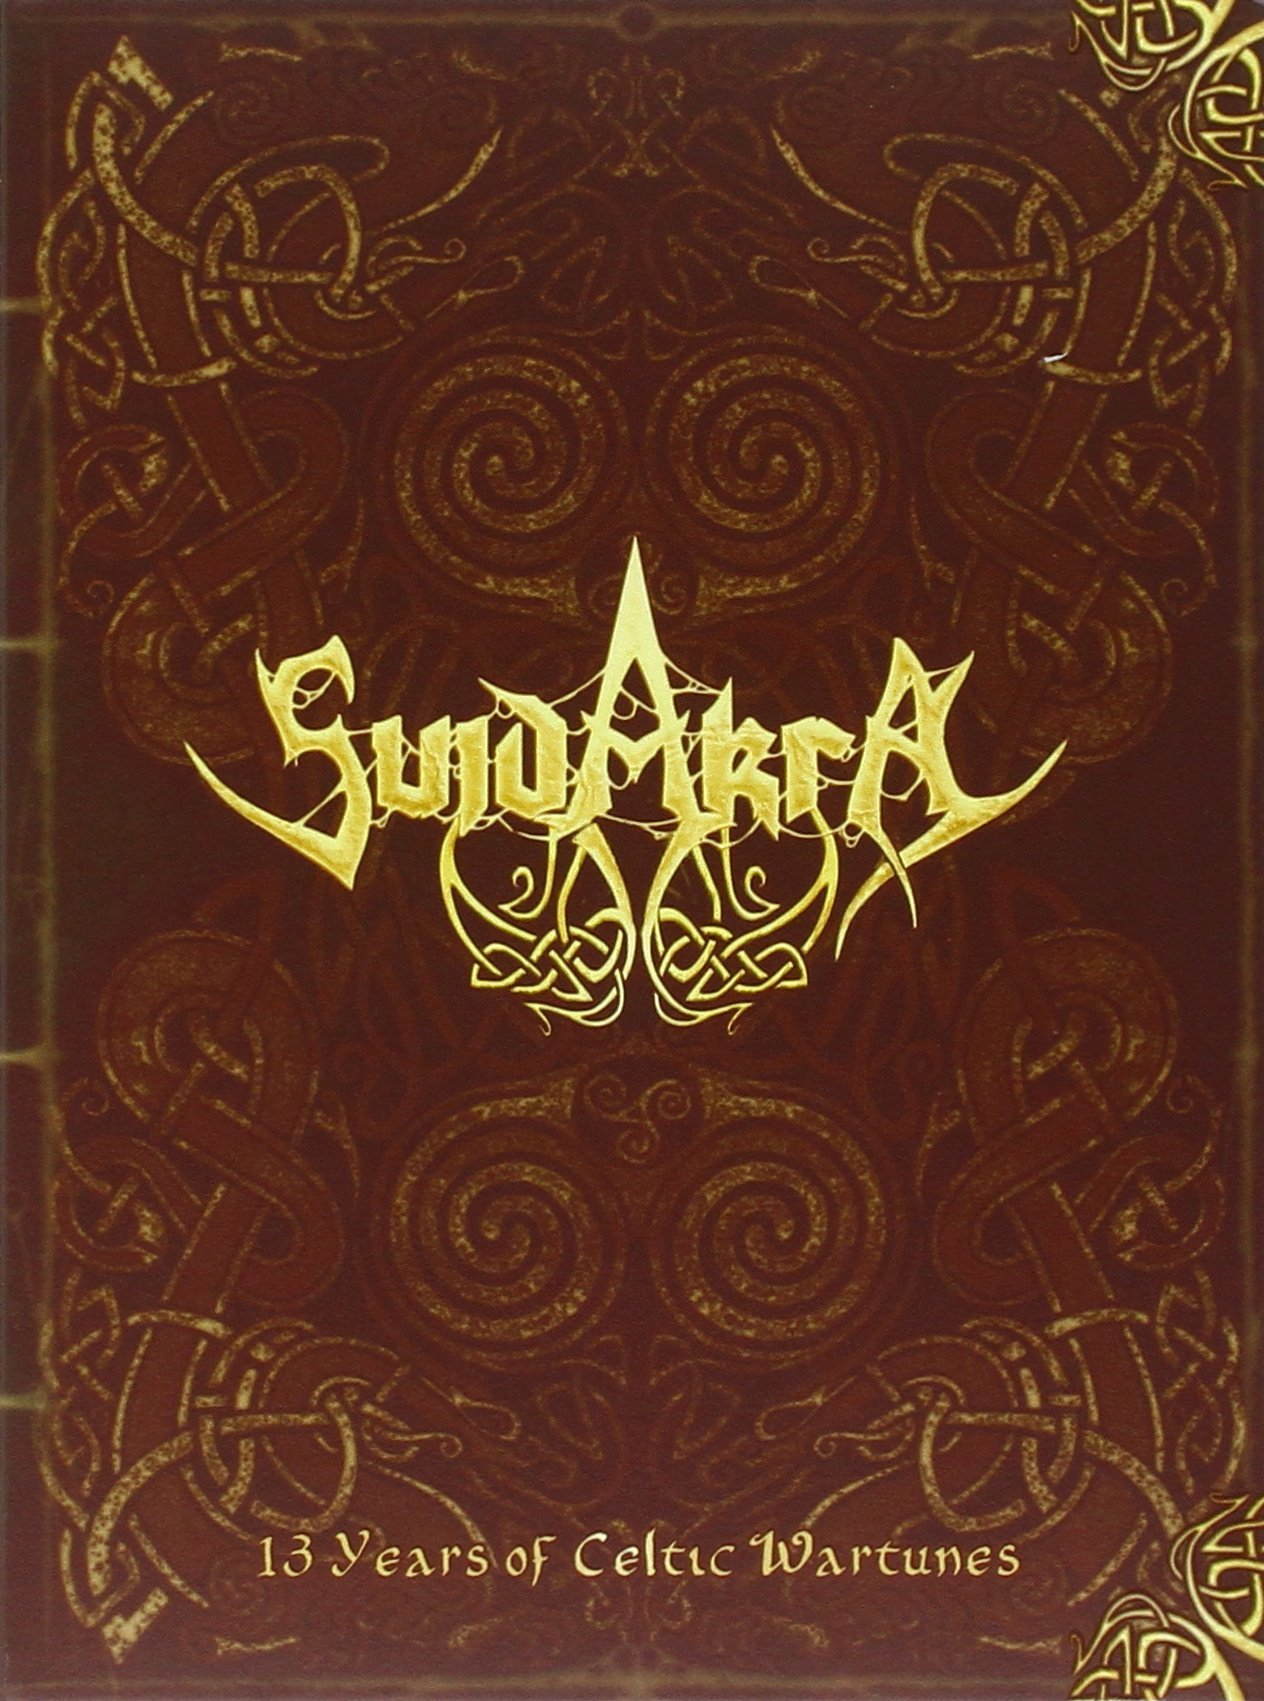 DVD : Suidakra - 13 Years Of Celtic Wartunes (With CD, 2PC)